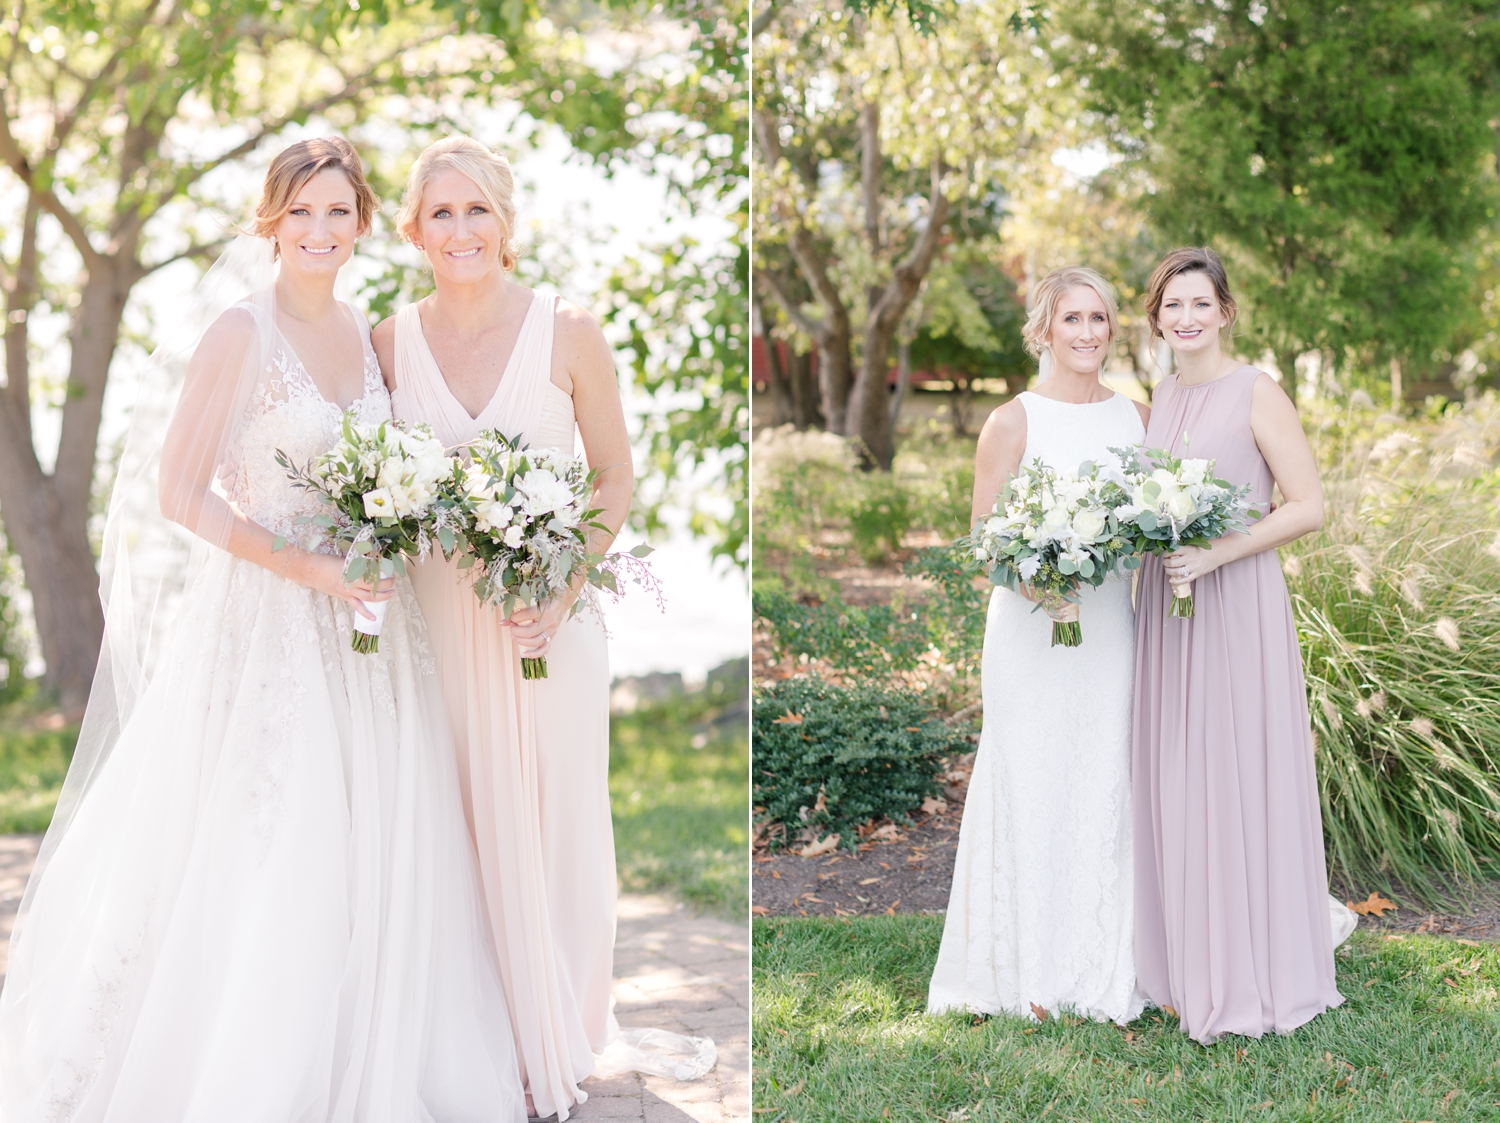 Kim's wedding   on the left,   Kristine's wedding   on the right. Shooting these two sisters' weddings this year was a blast. We love the Wayson family!